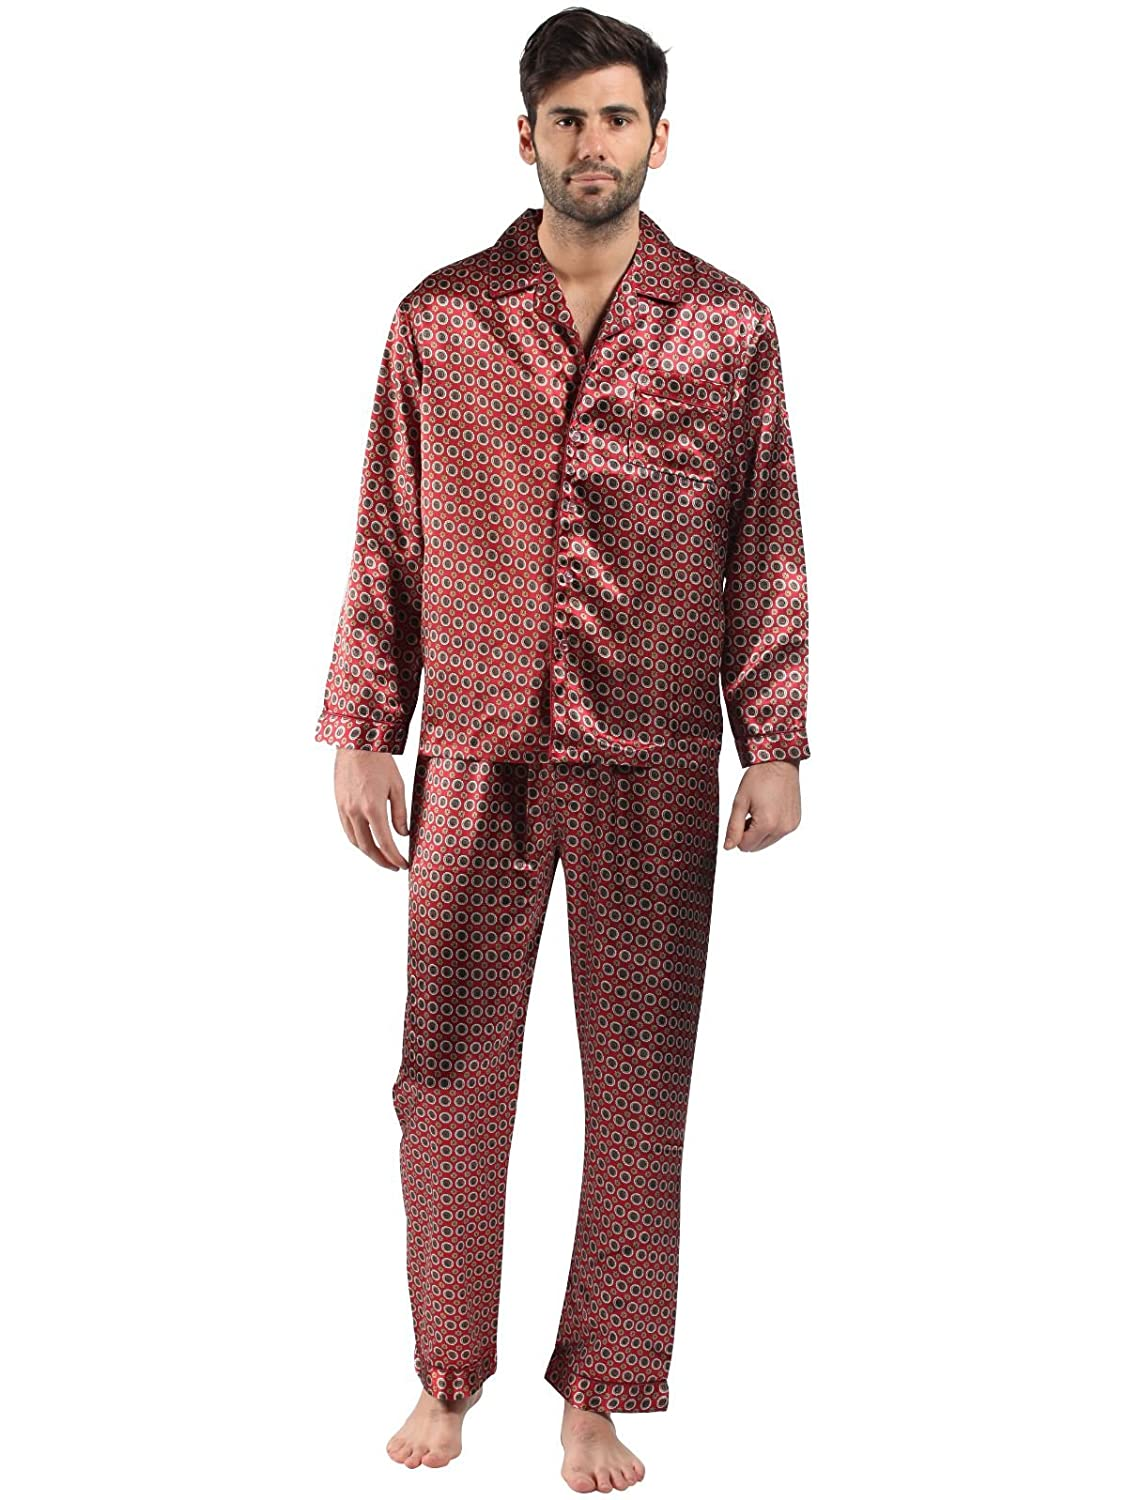 Mens/Gentlemens Nightwear/Sleepwear Satin Printed Long Sleeve Pyjama Suit Set, Various Colours & Sizes Harvey James 9724/9725